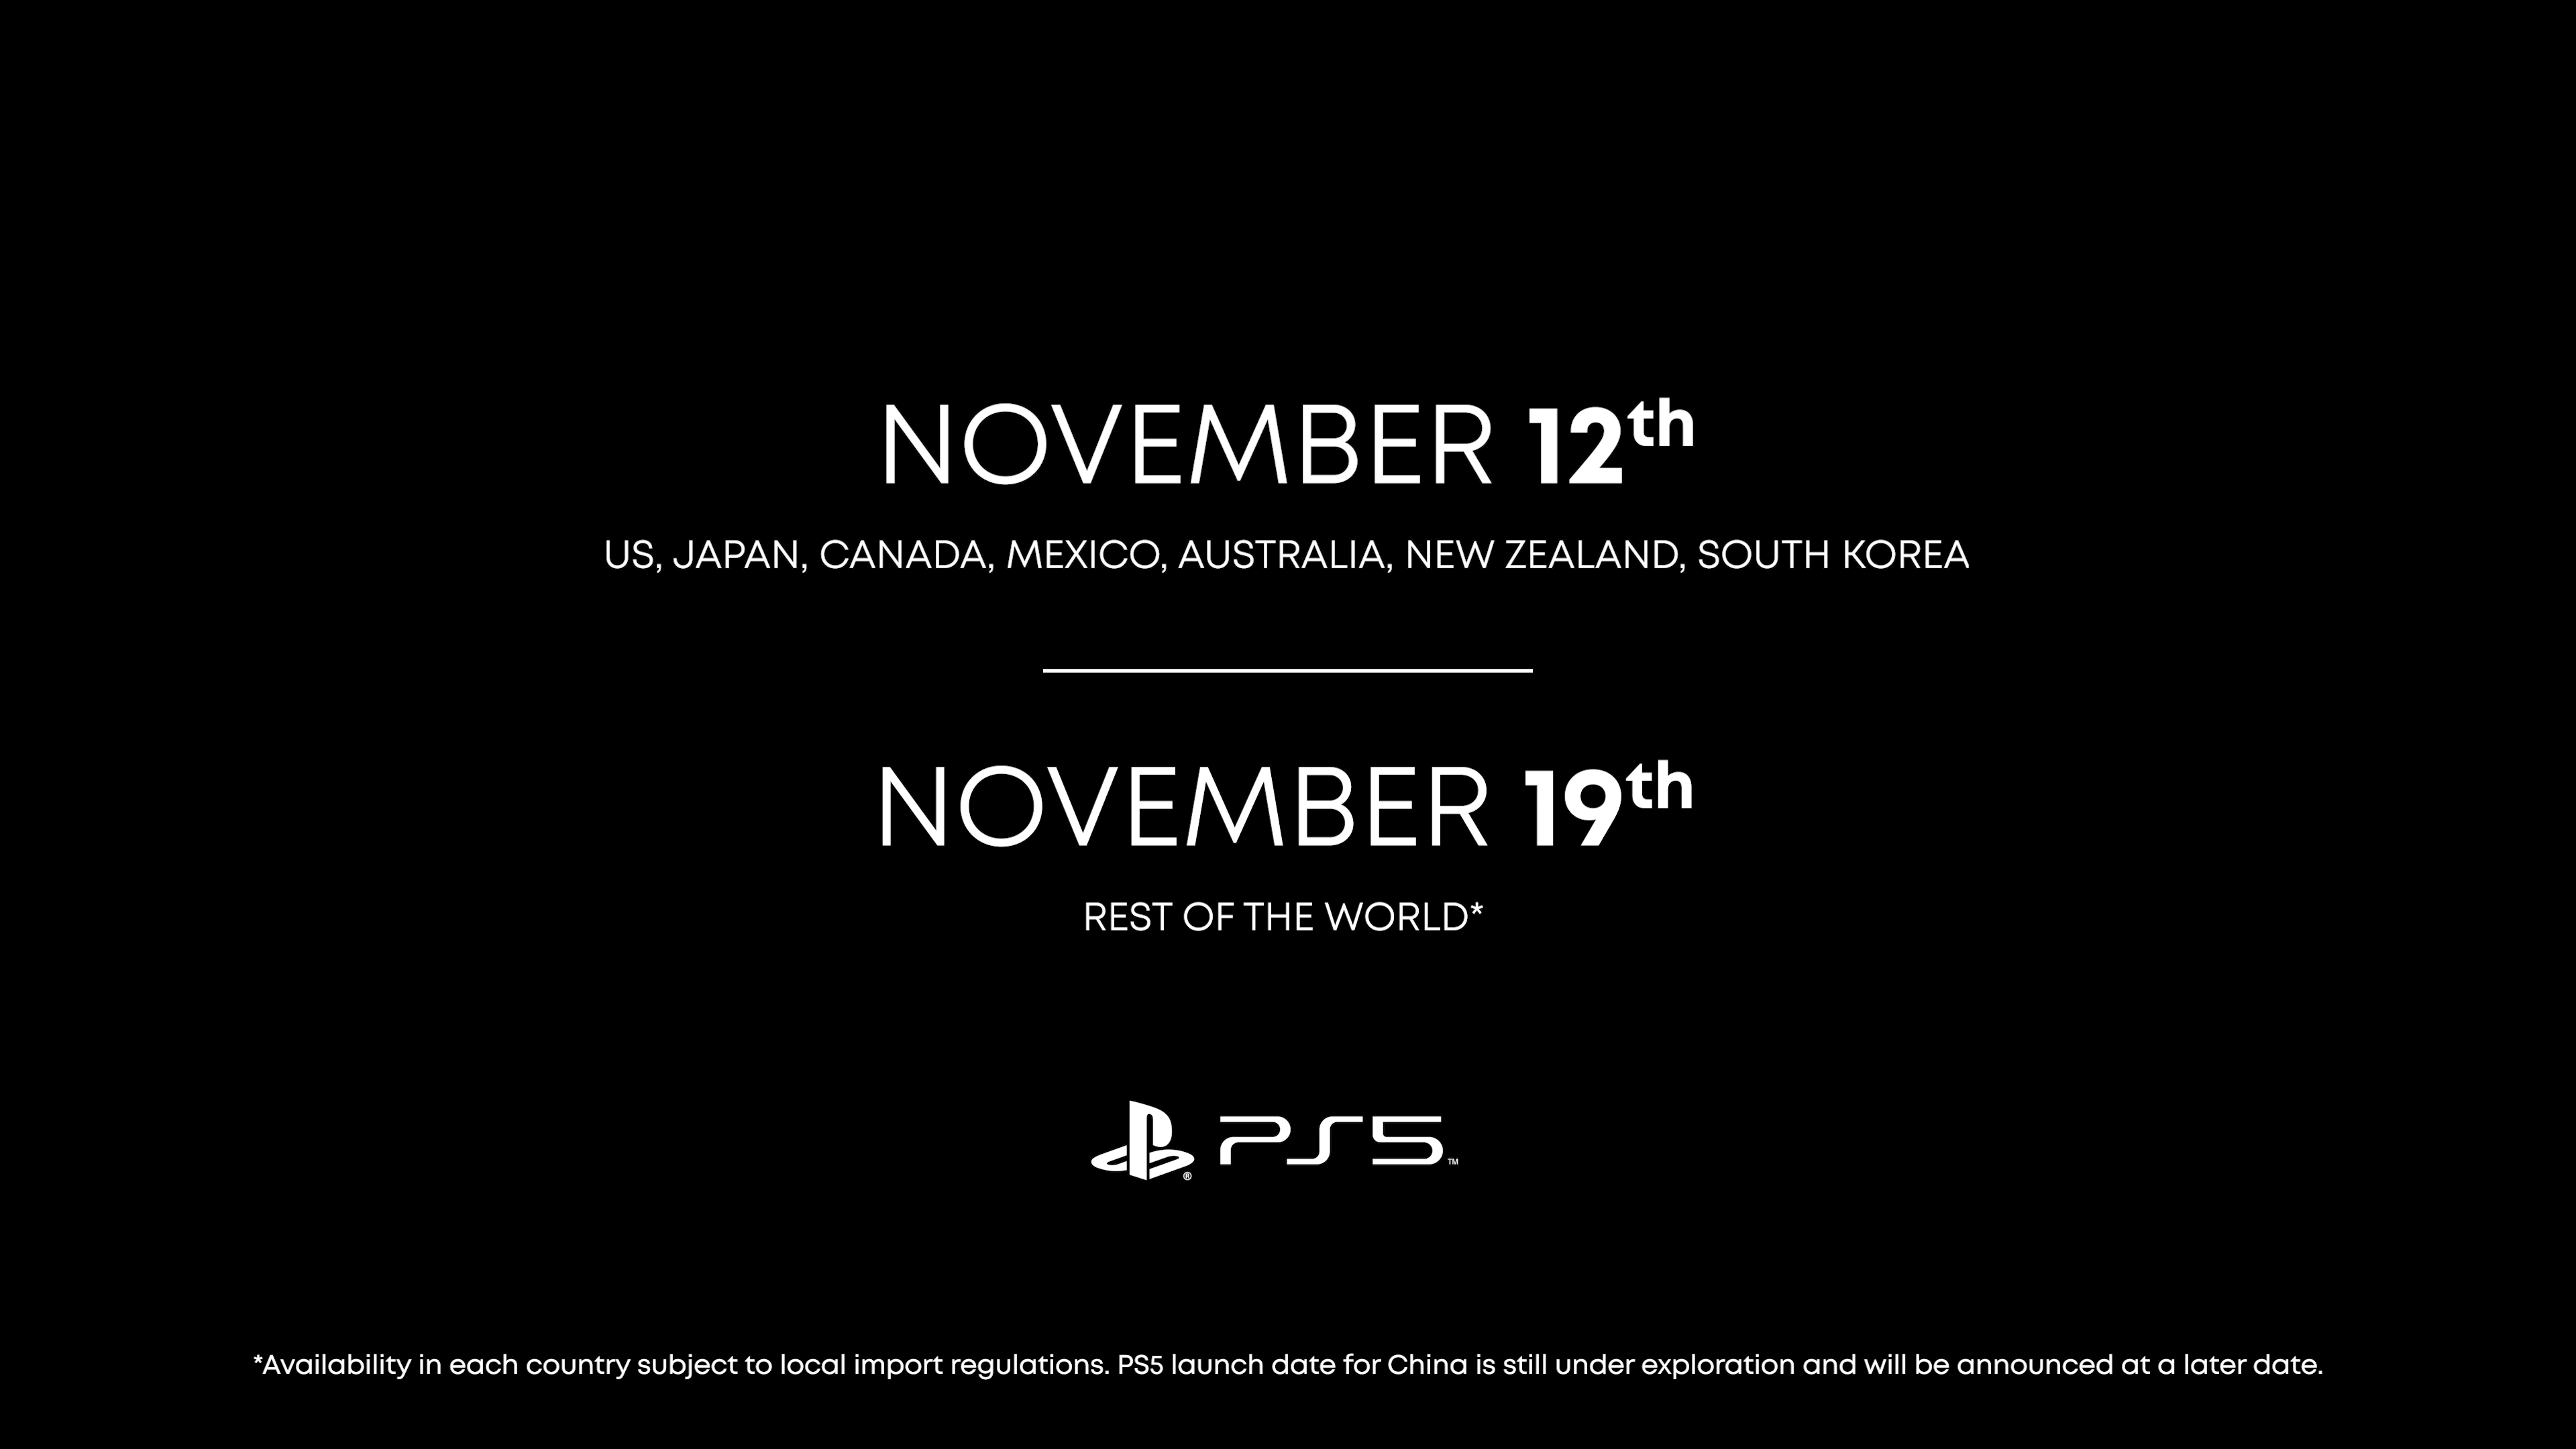 PlayStation 5 release dates November 12 for US, Japan, Canada, Mexico, Australia, New Zealand, South Korea Sony  November 19 for Rest of the World*  Availability in each country subject to local import regulations. PS5 launch date for China is still under exploration and will be announced at a later date.